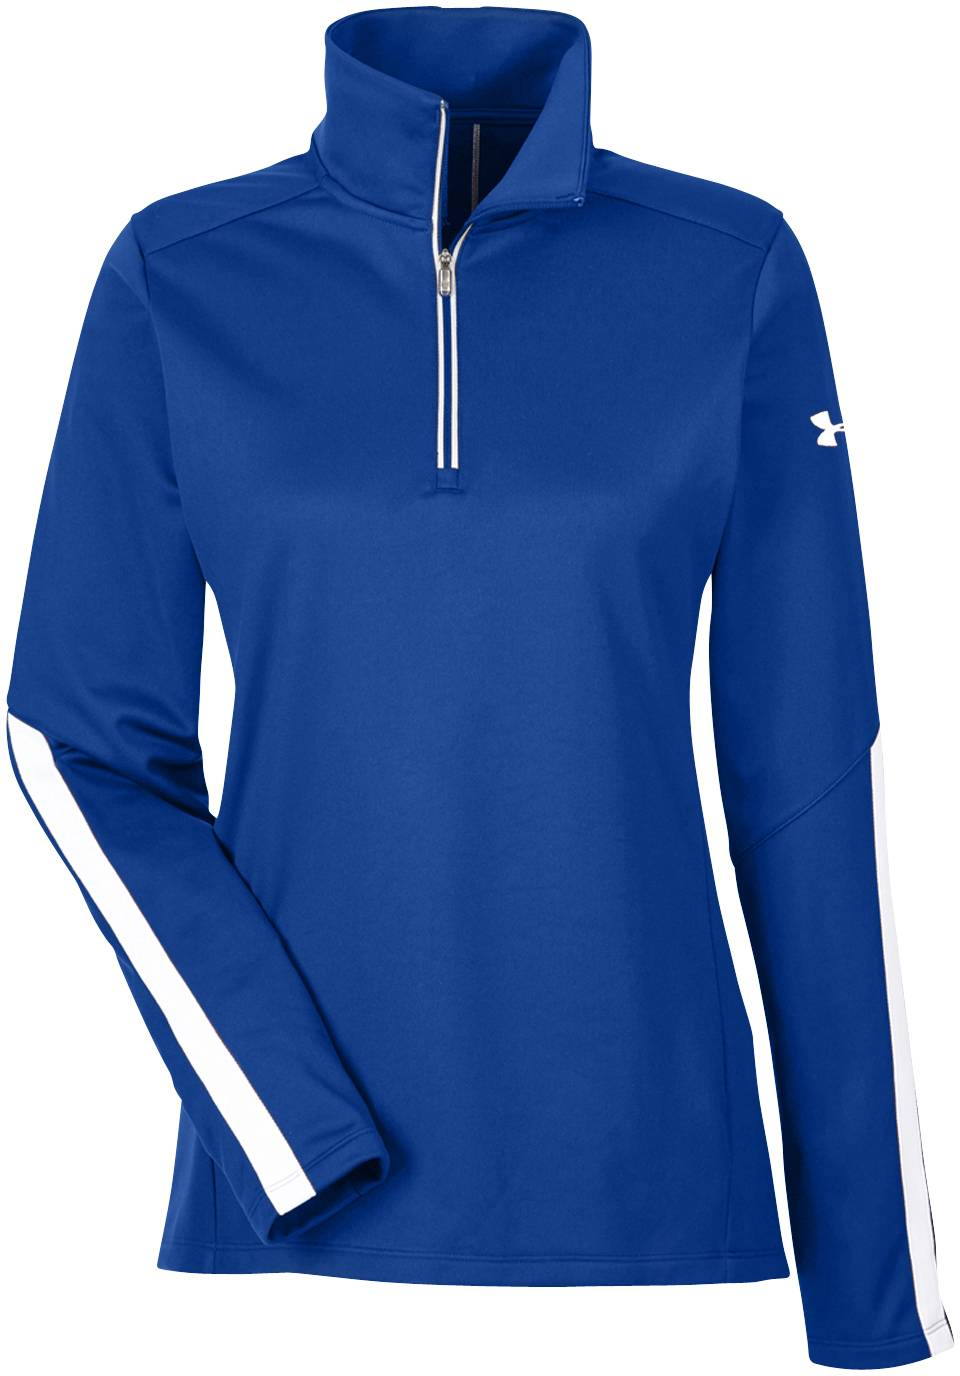 royal blue under armour long sleeve women's